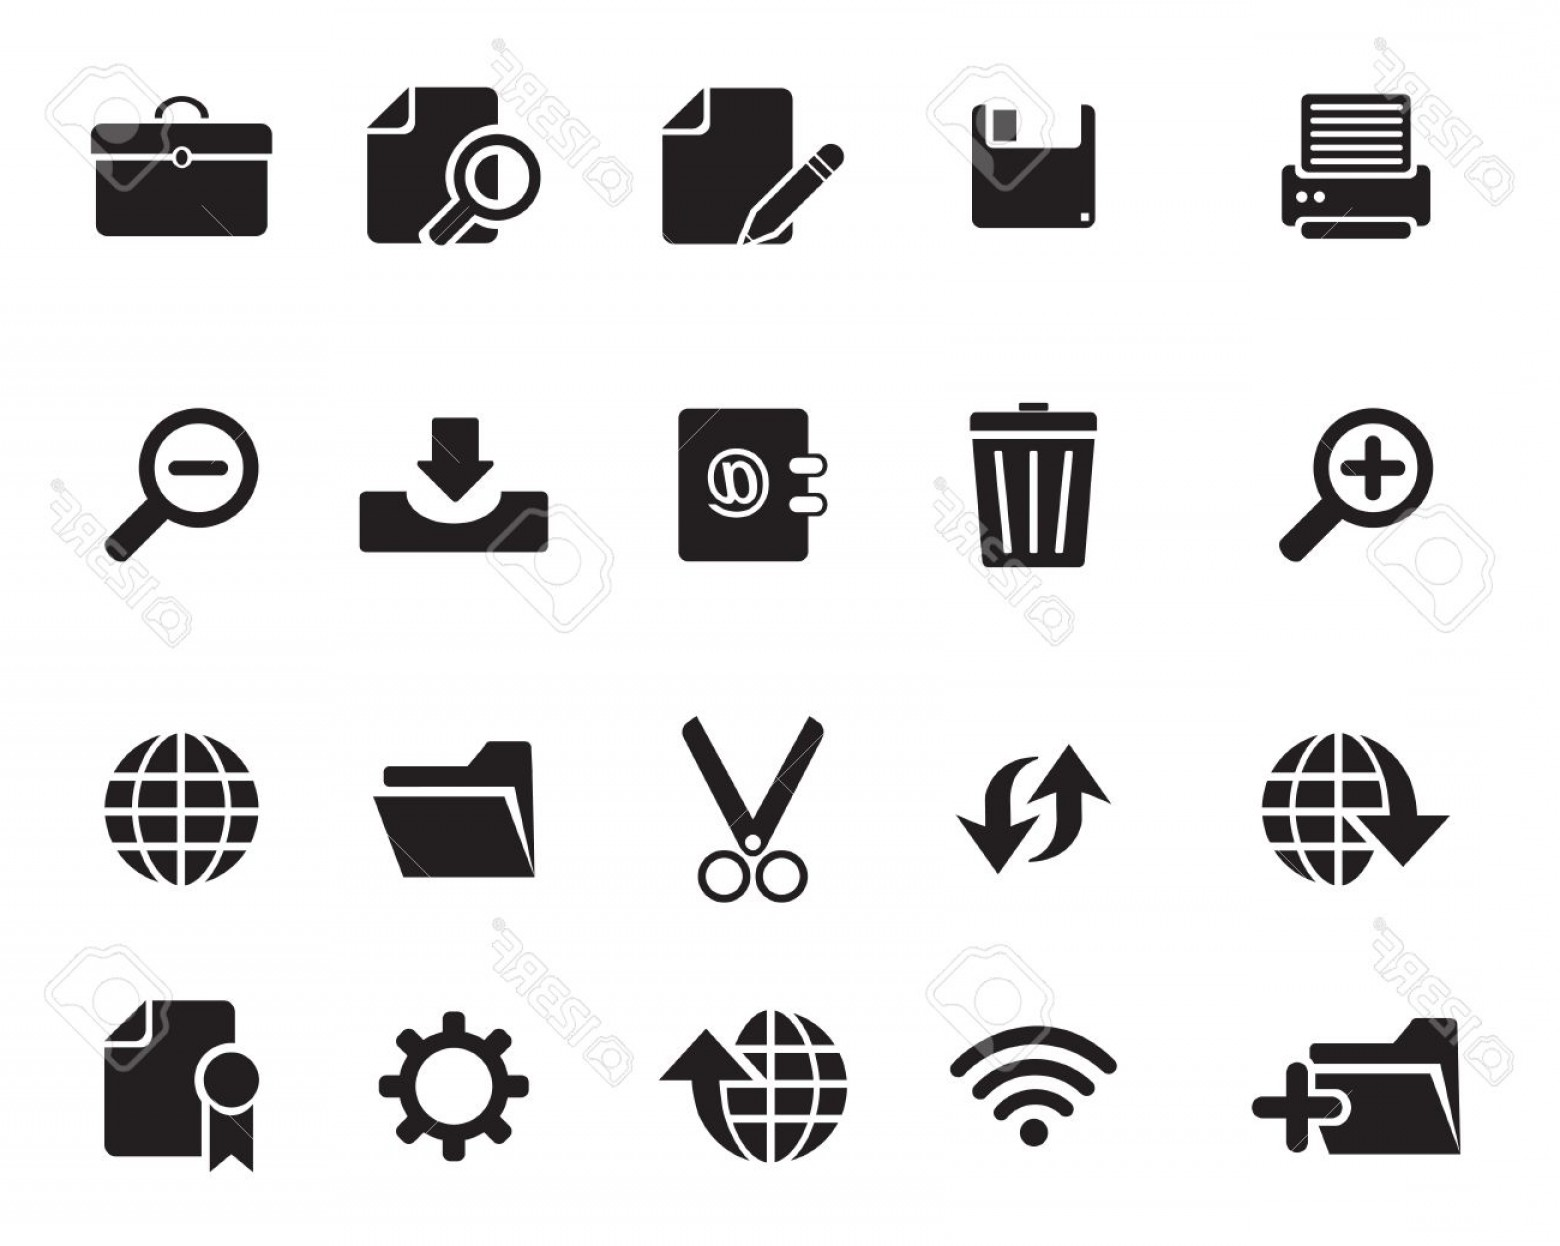 Free Vector File Software: Photoweb Icons Vector Illustrator Available In Jpeg And Eps Formats To Modify This File Editing Software